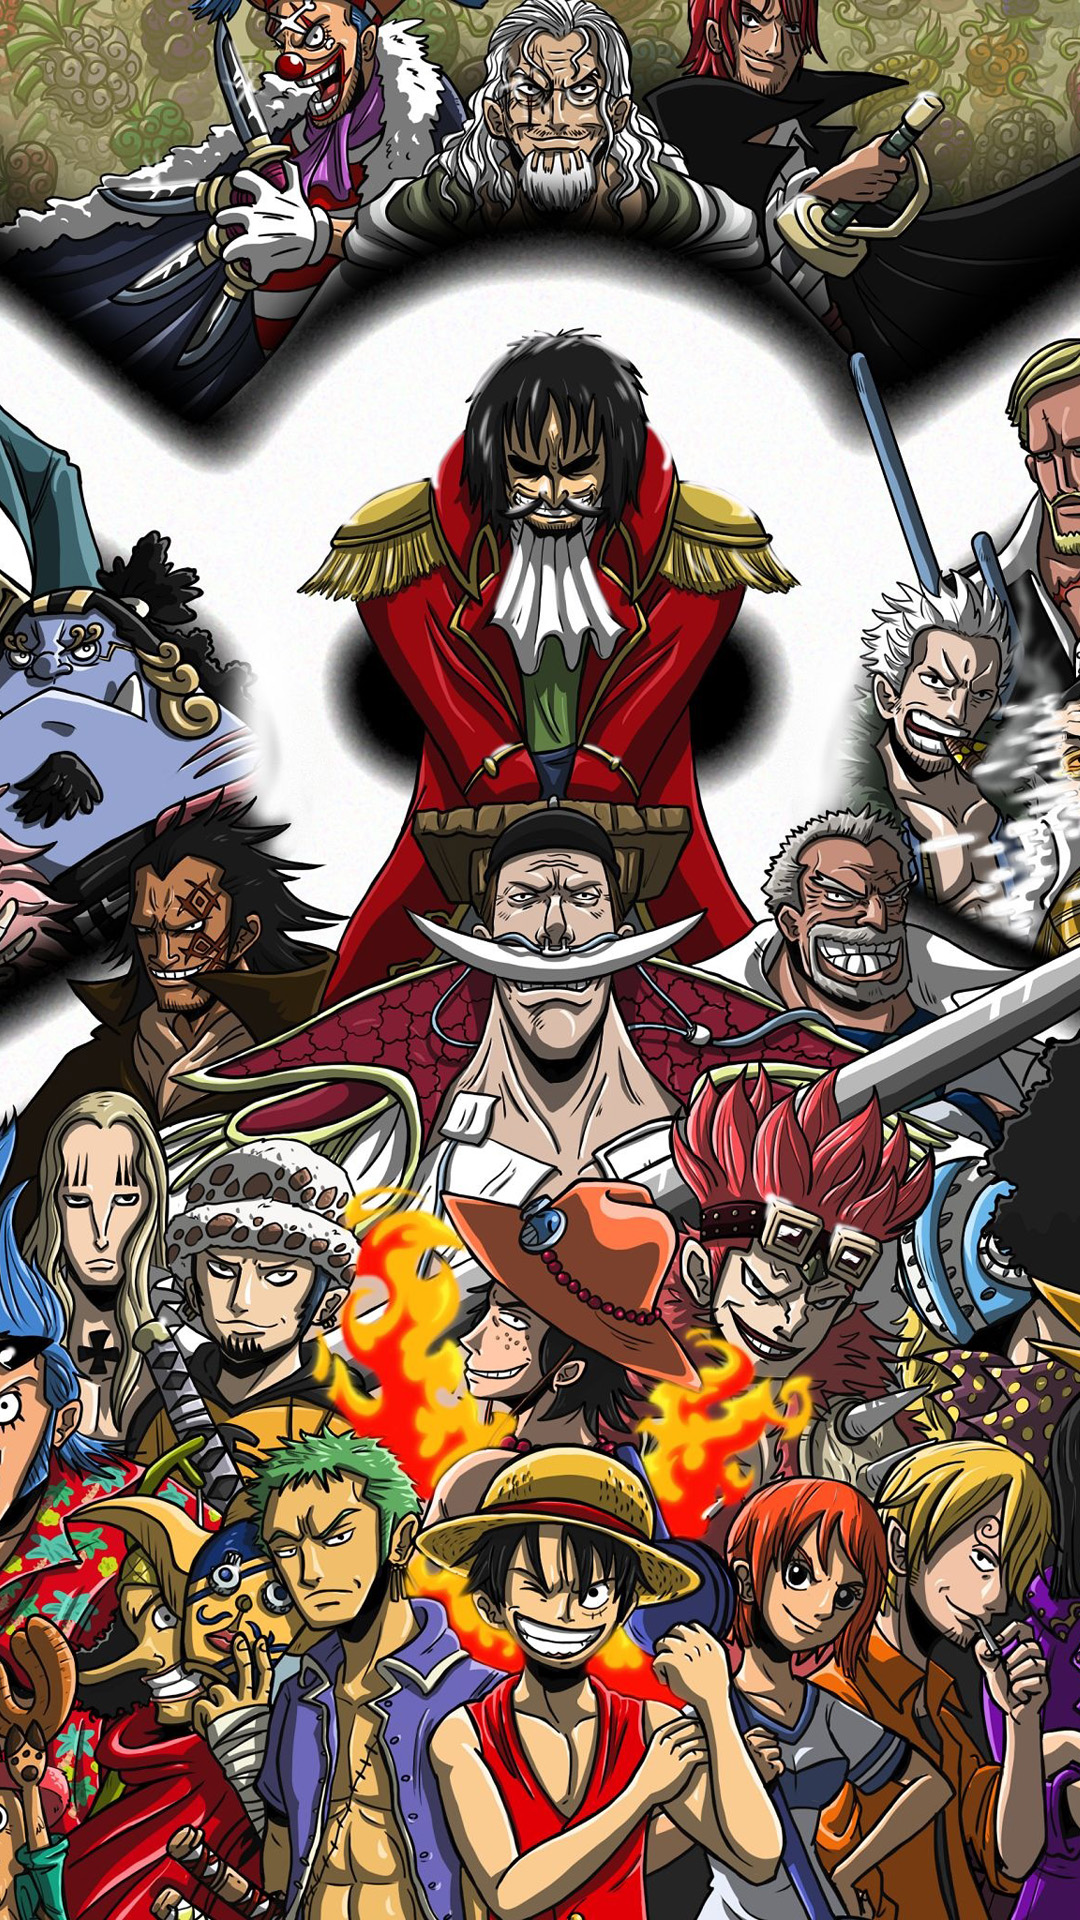 Free Download One Piece 1080x1920 For Your Desktop Mobile